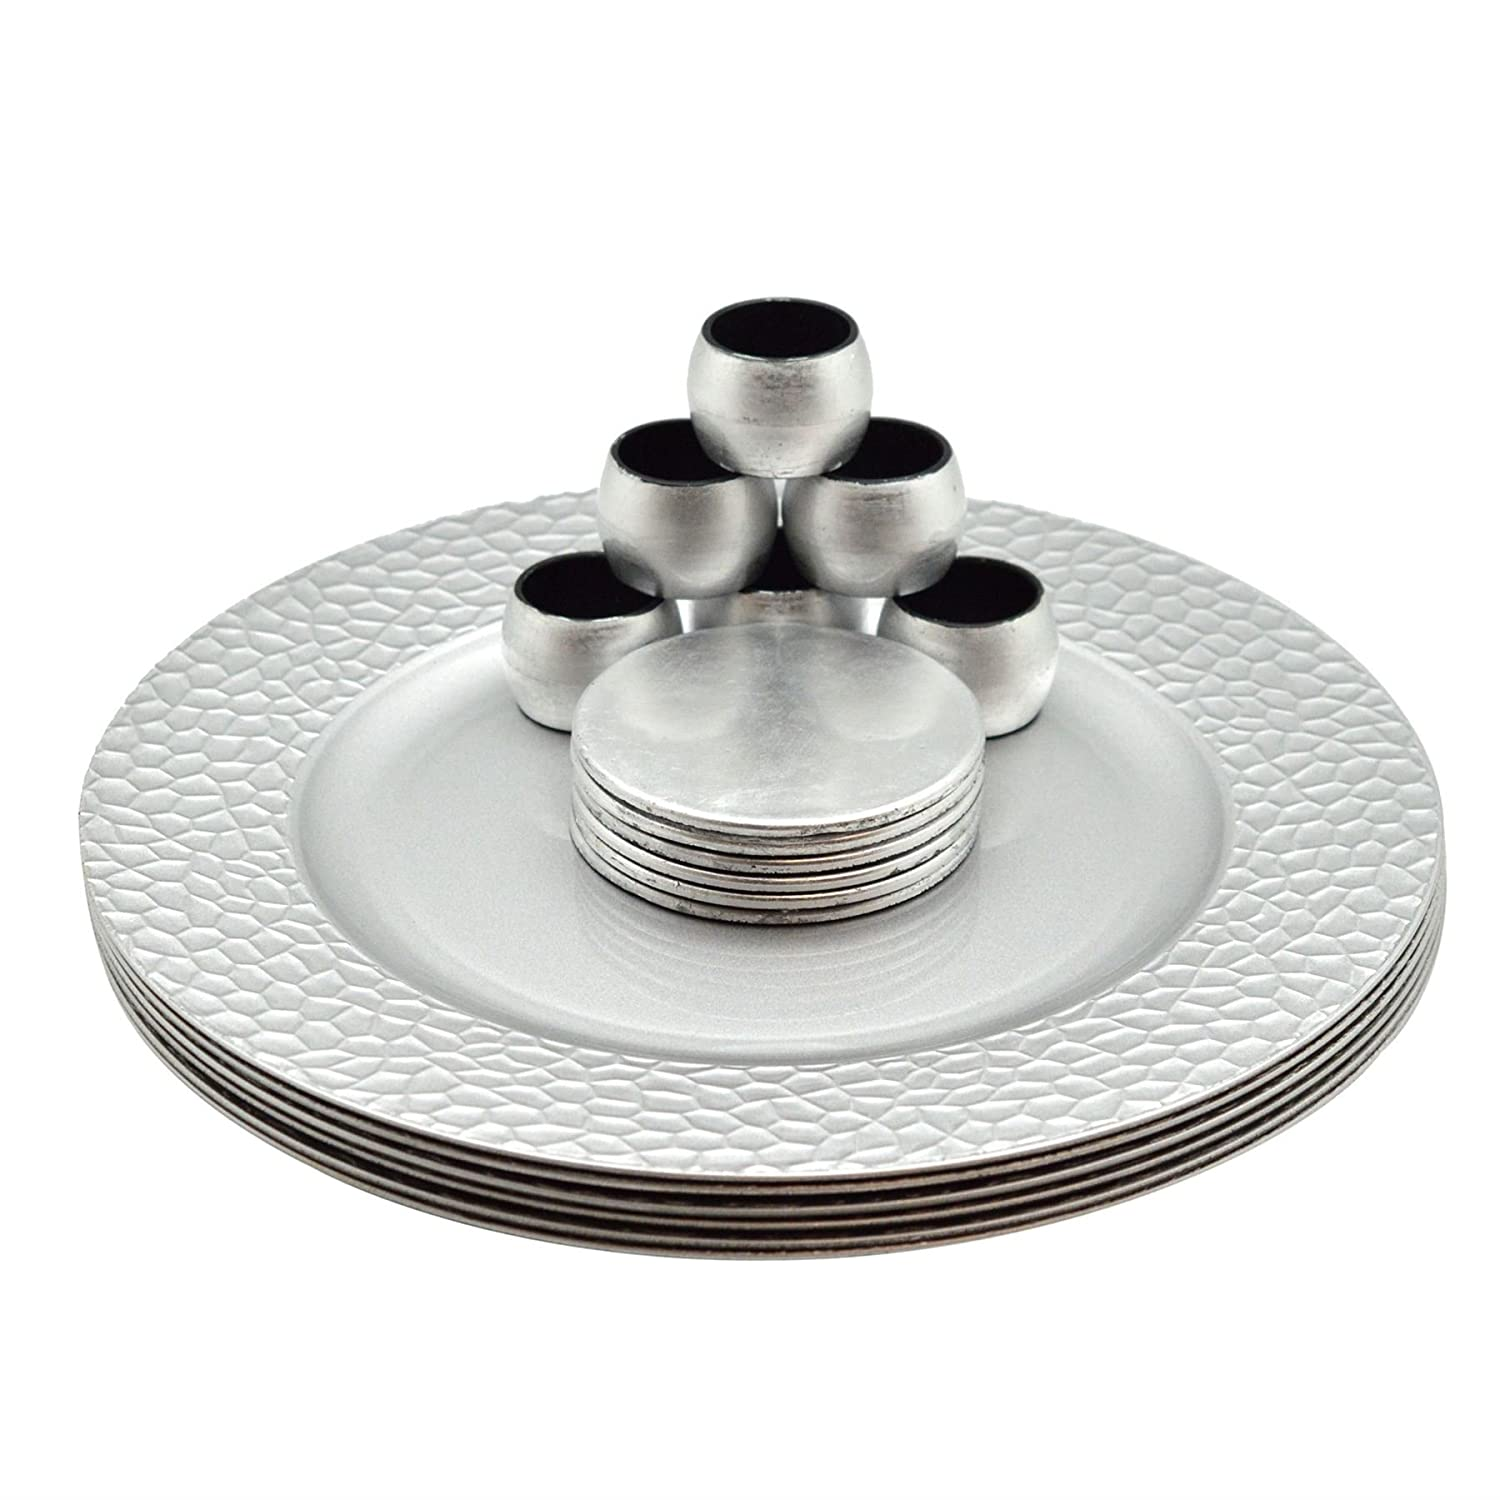 Argon Tableware Round Charger Plates, Coasters & Napkin Rings Set In Silver - Set Of 18 (6 Hammered Edge Plates, 6 Coasters, 6 Napkins Rings)